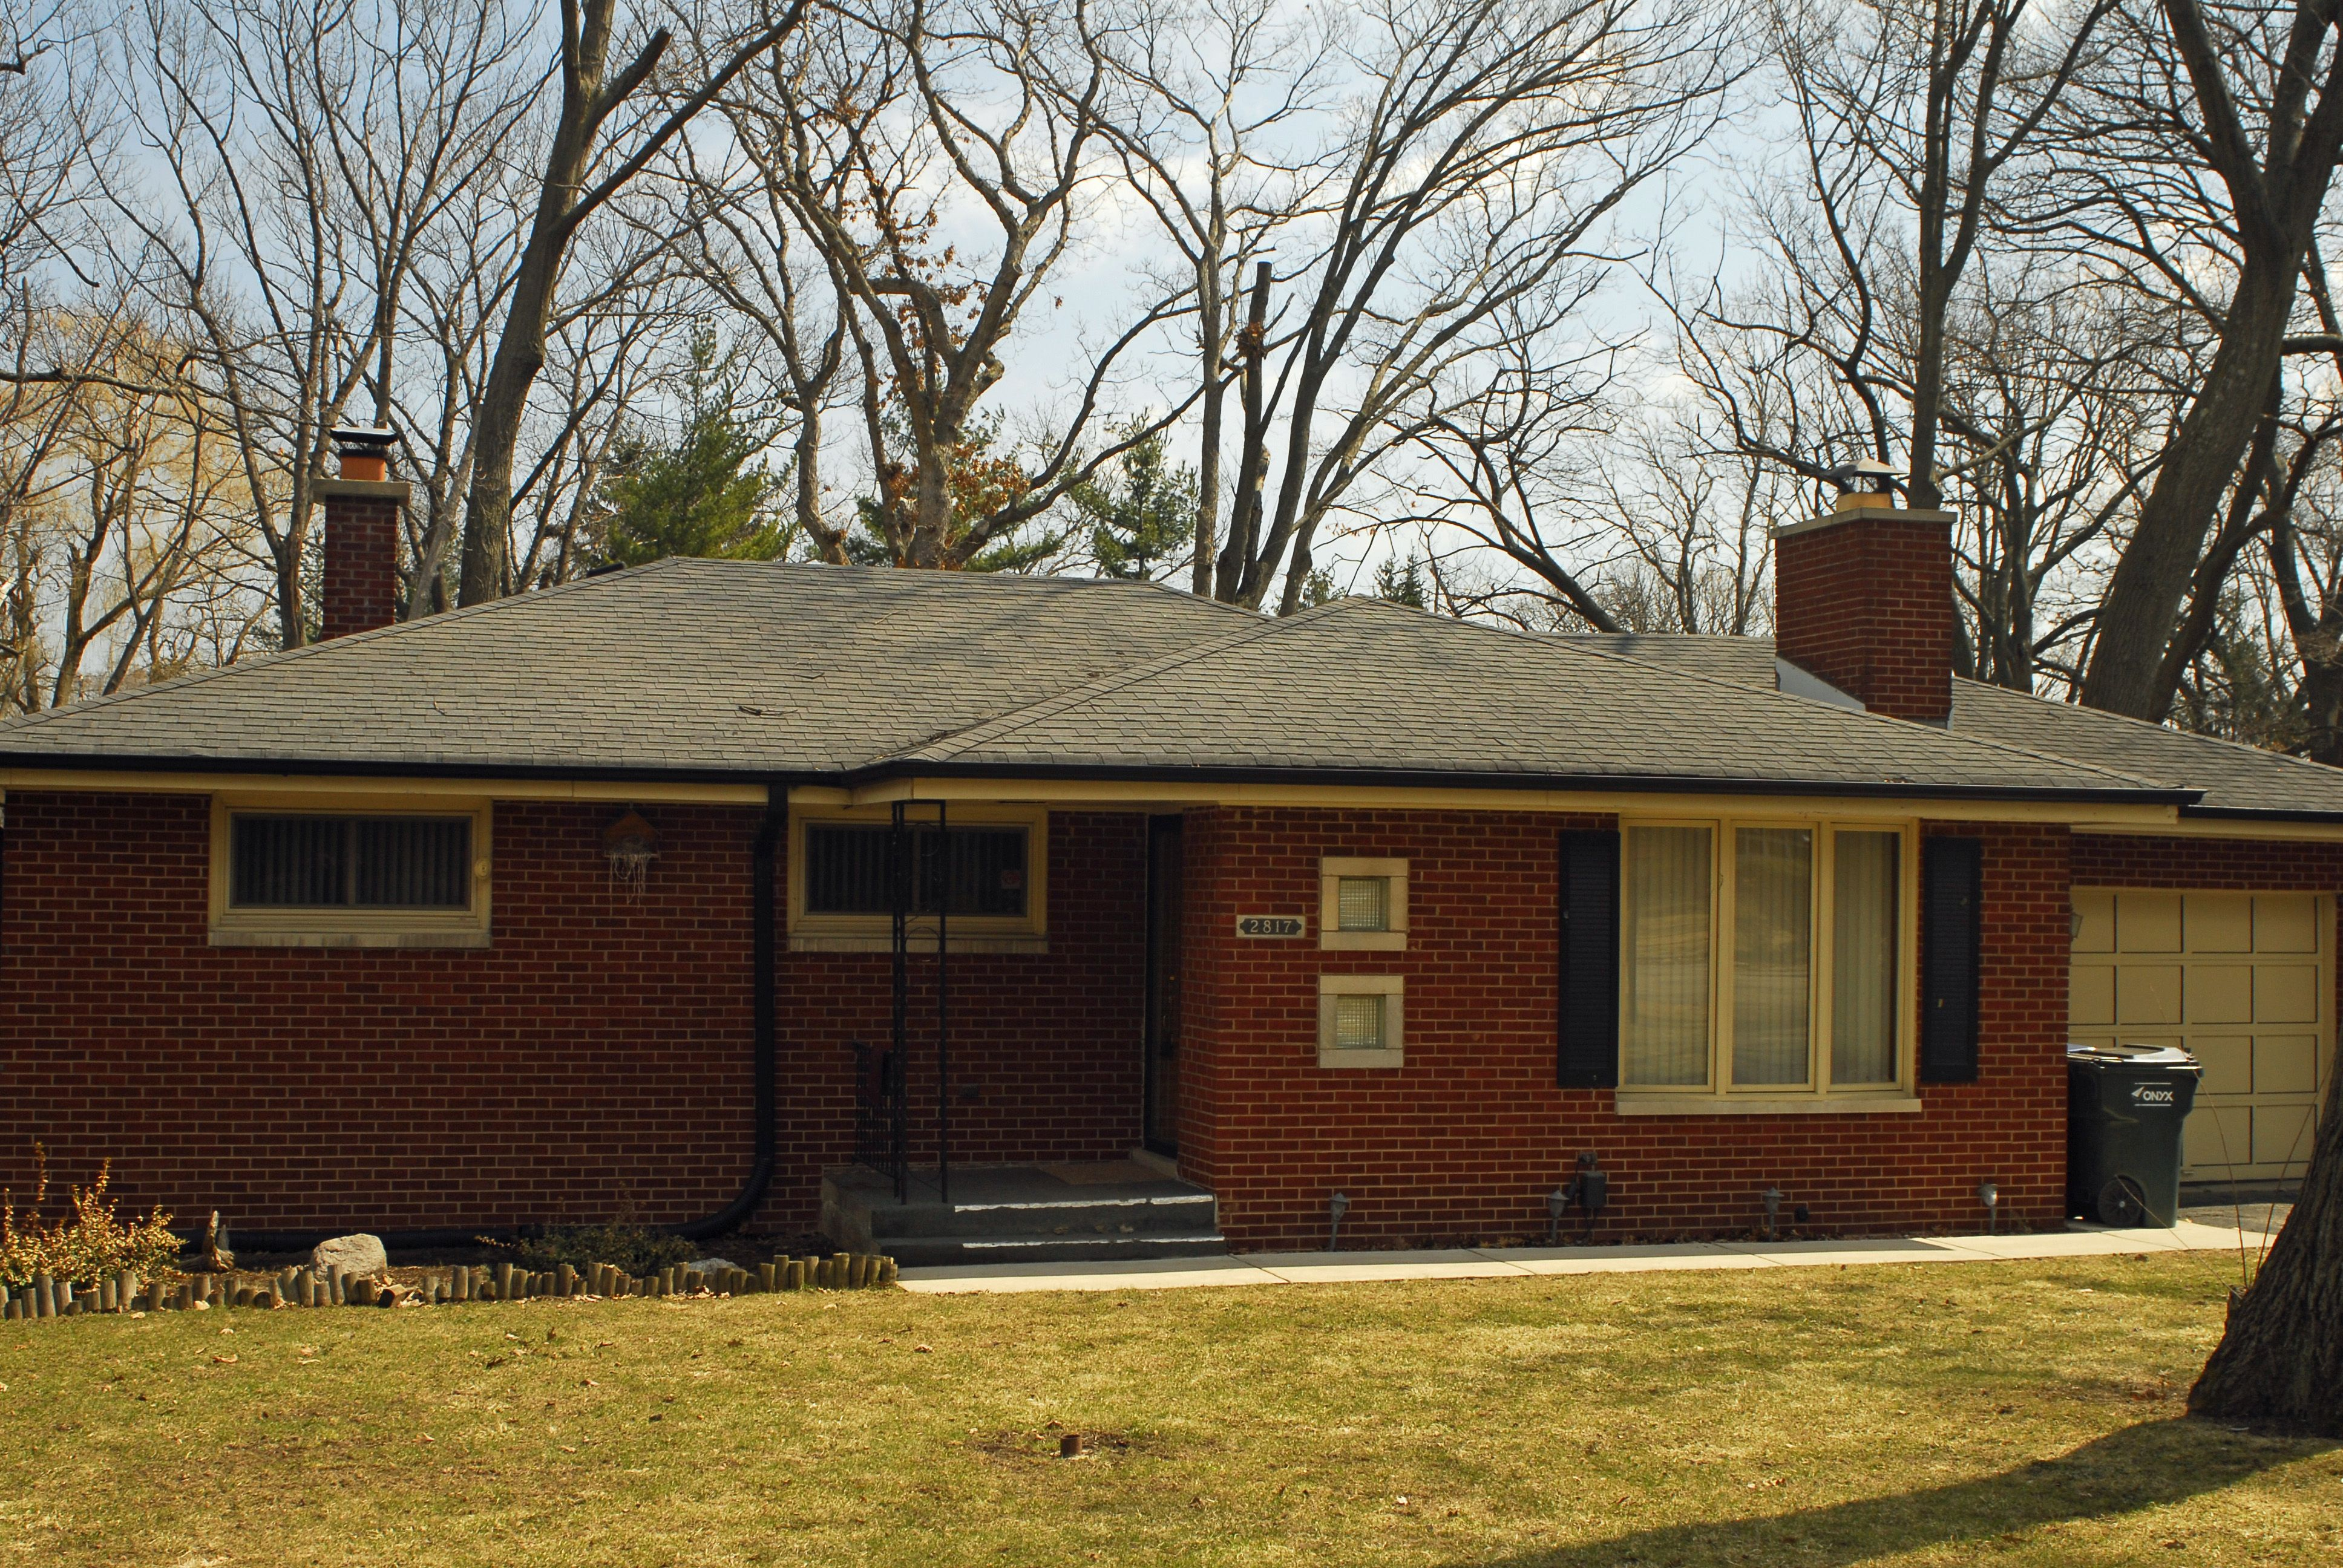 2817 Forest Ln in Waukegan is a great brick ranch steps